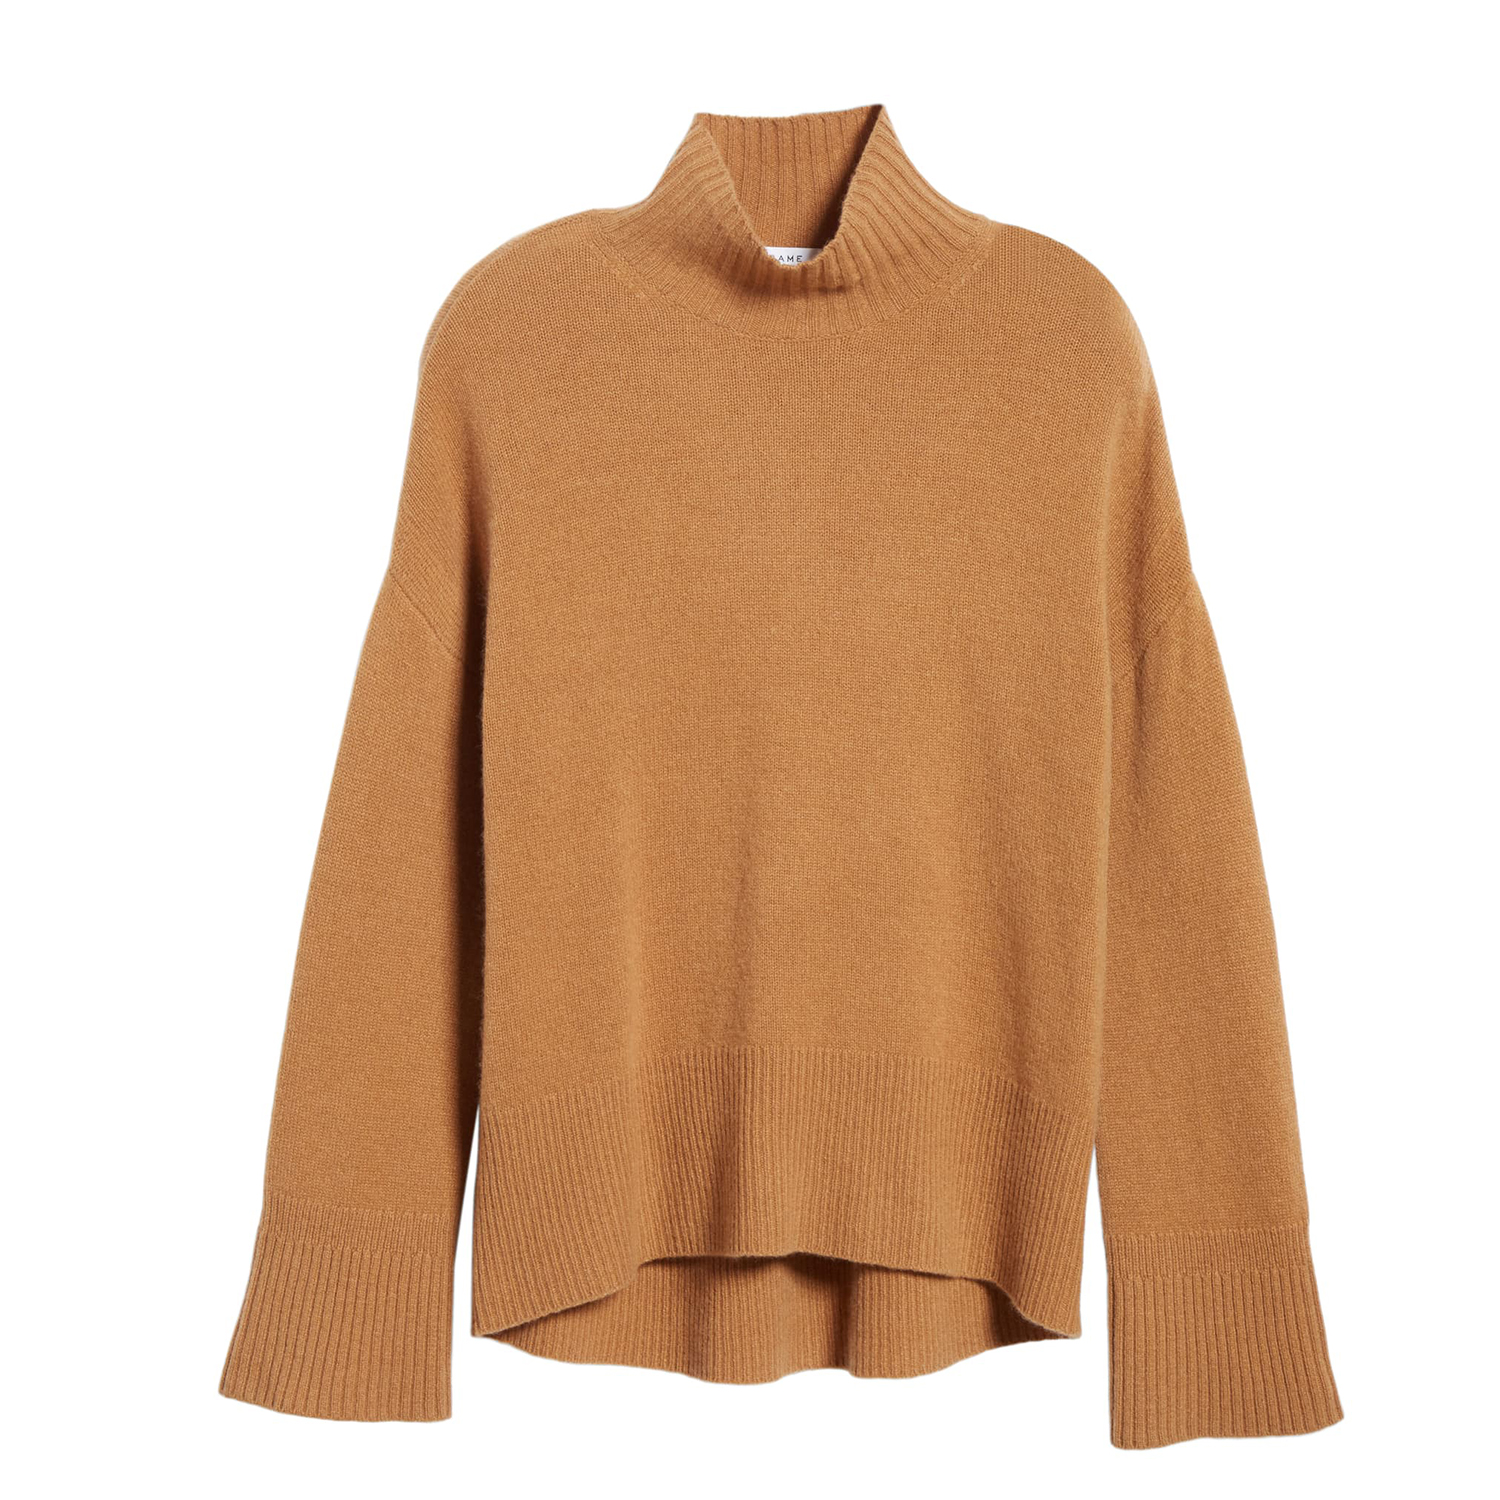 FRAME High/Low Cashmere Sweater